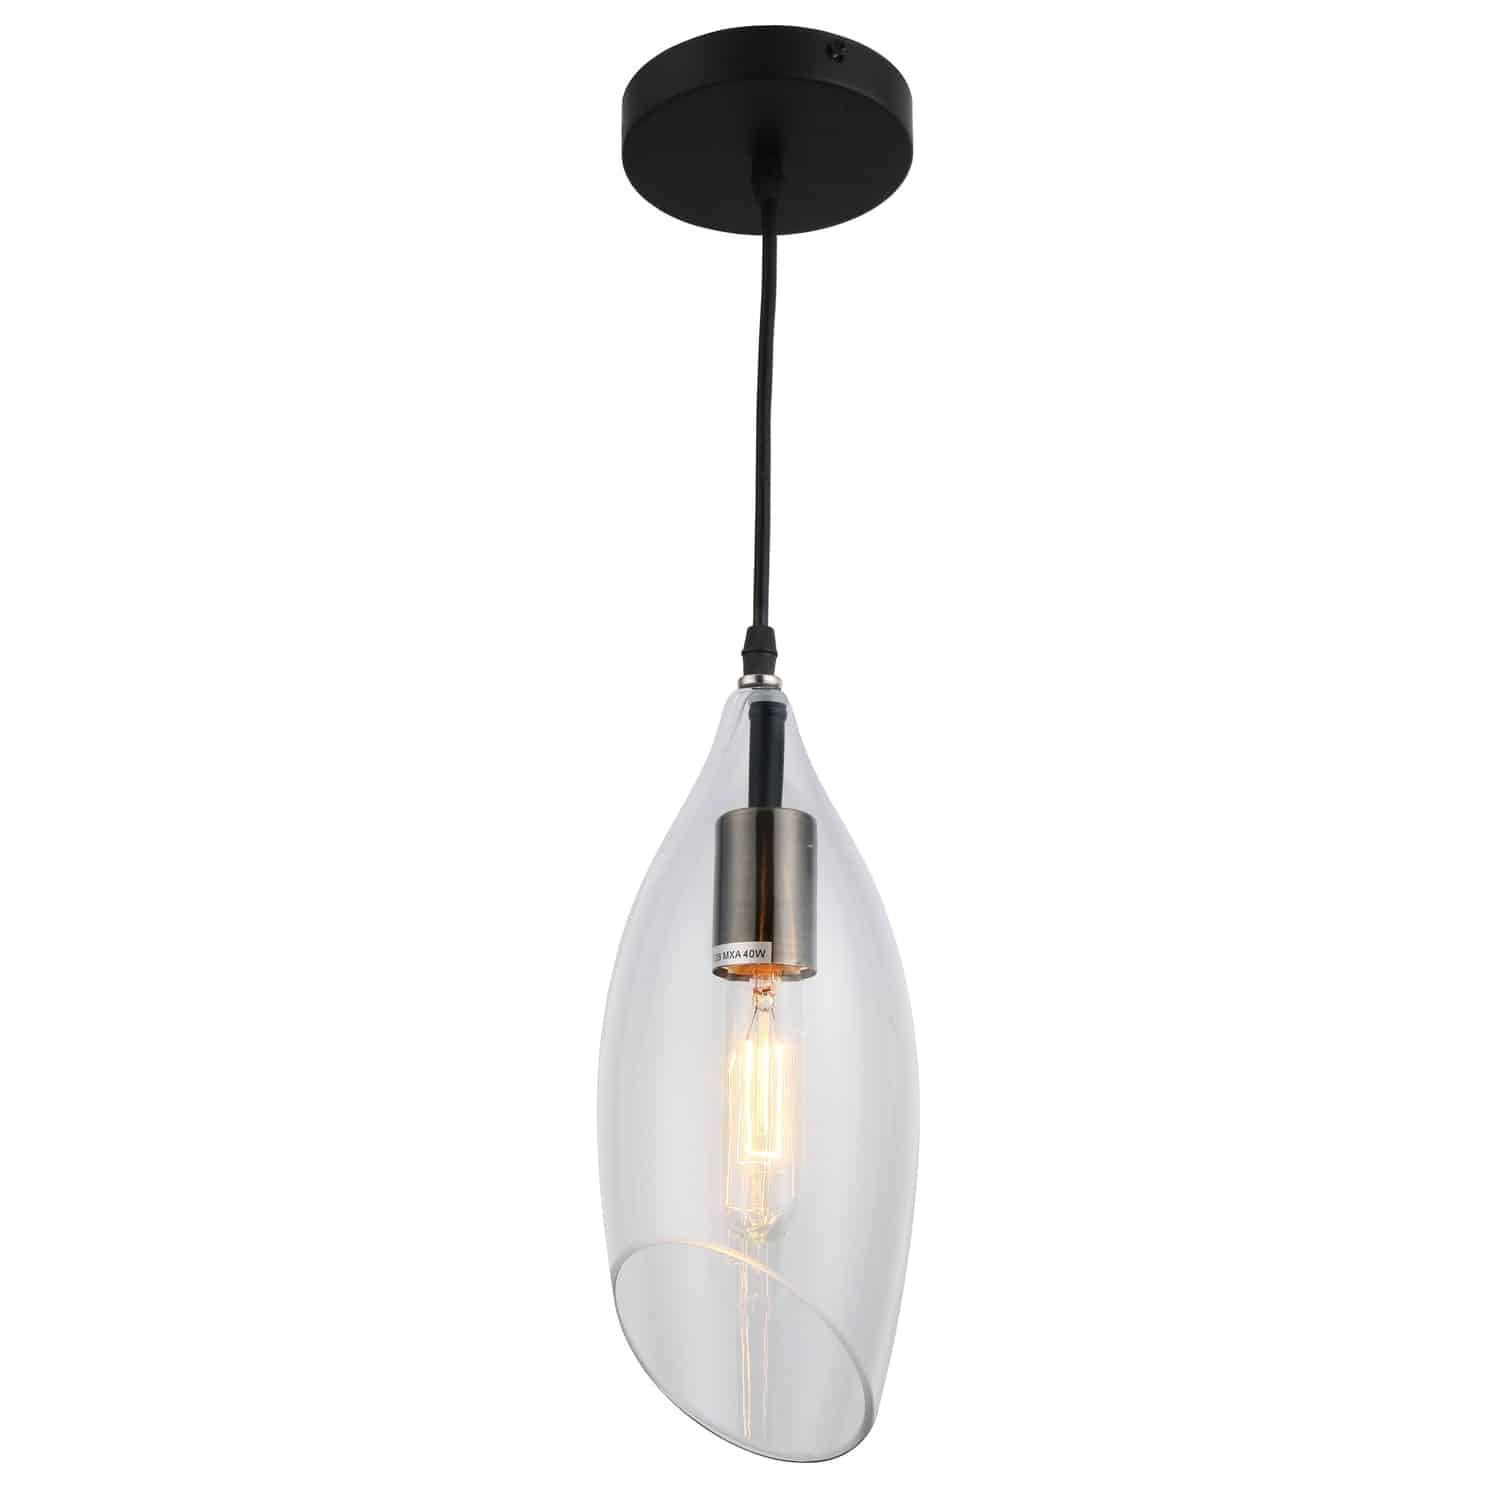 1 Light Incandescent Pendant, Black Finish with Clear Glass